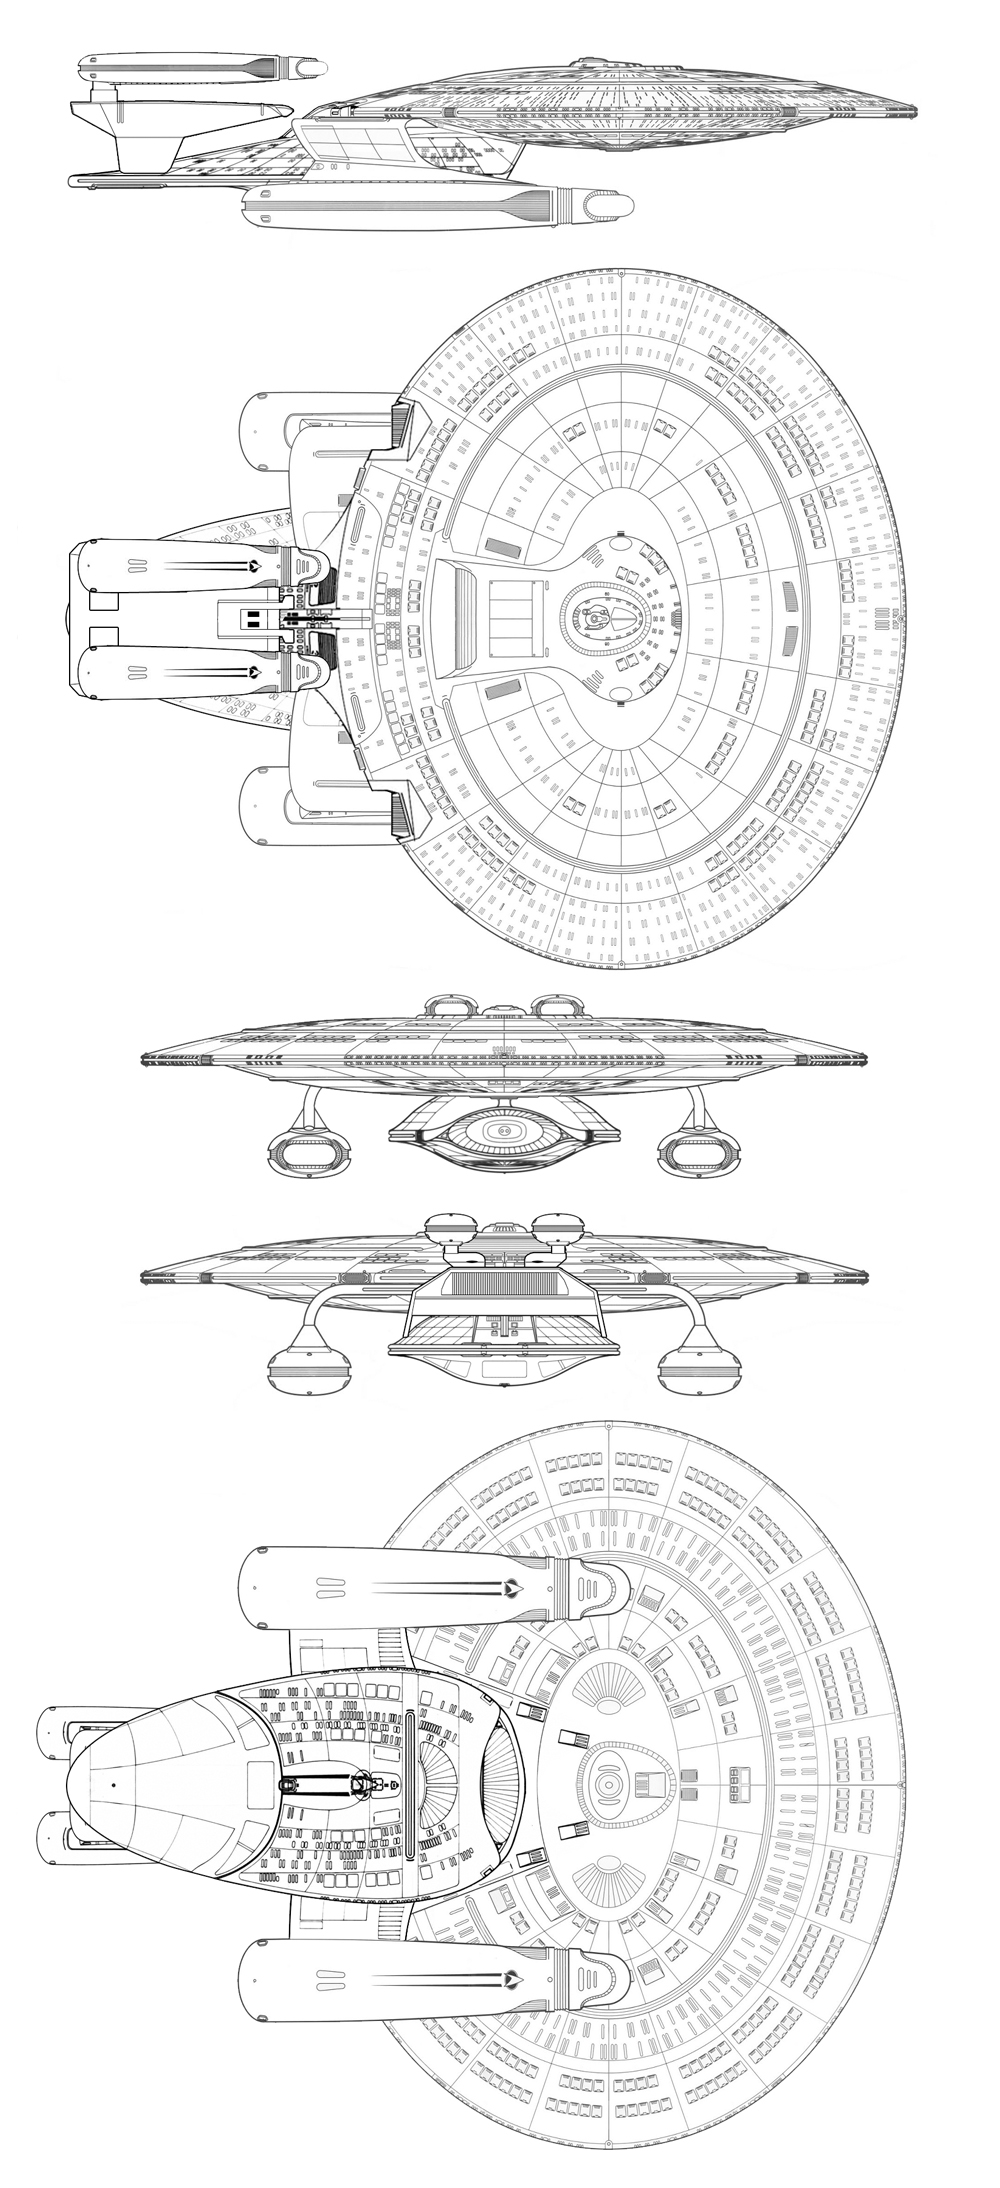 medium resolution of uss melbourne from the battle at wolf 359 in tng s best of both worlds pt ii